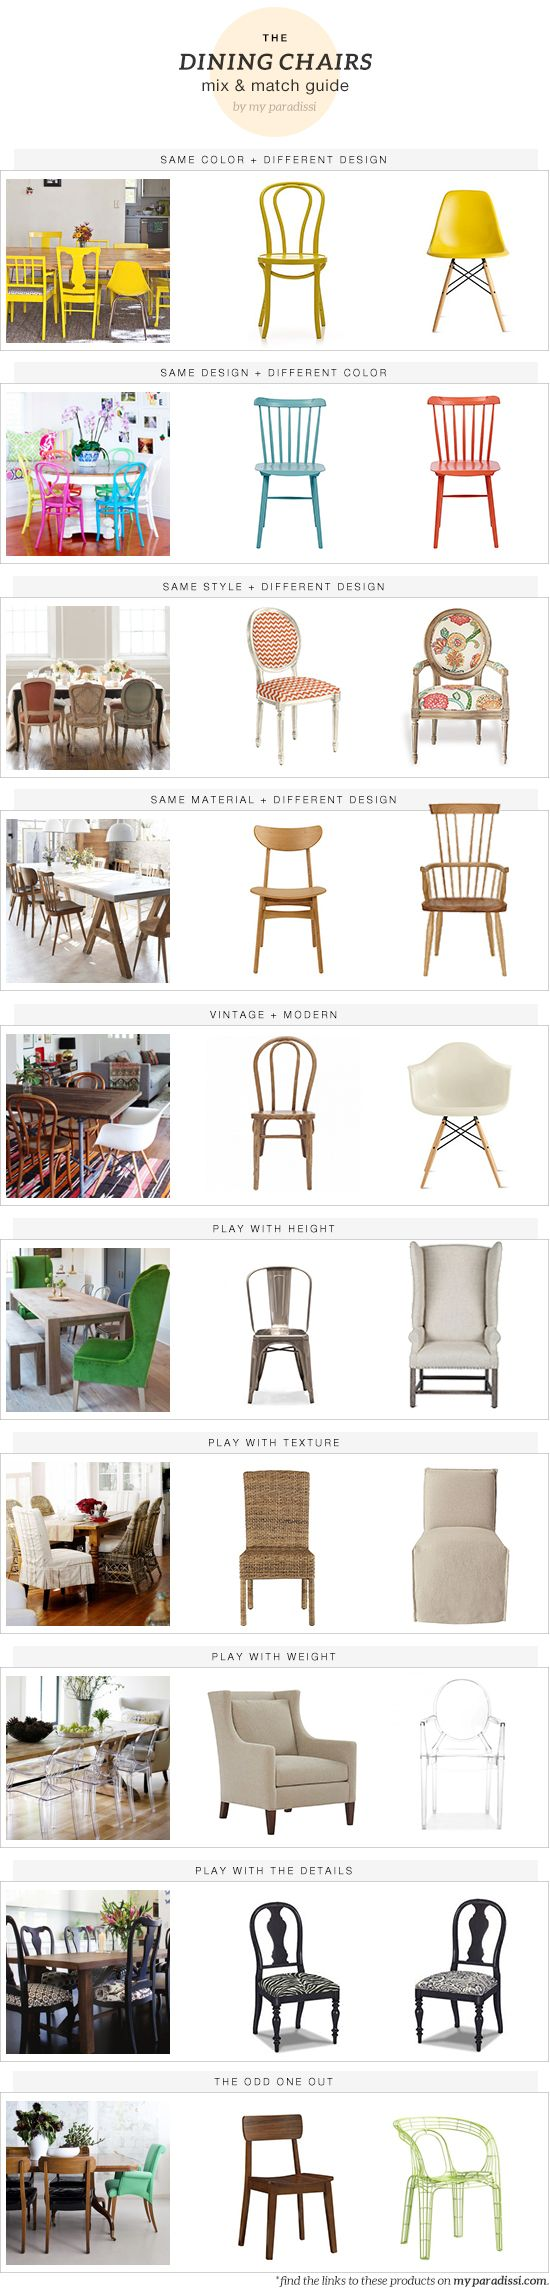 my-paradissi-the-dining-chair-mix-and-match-guide